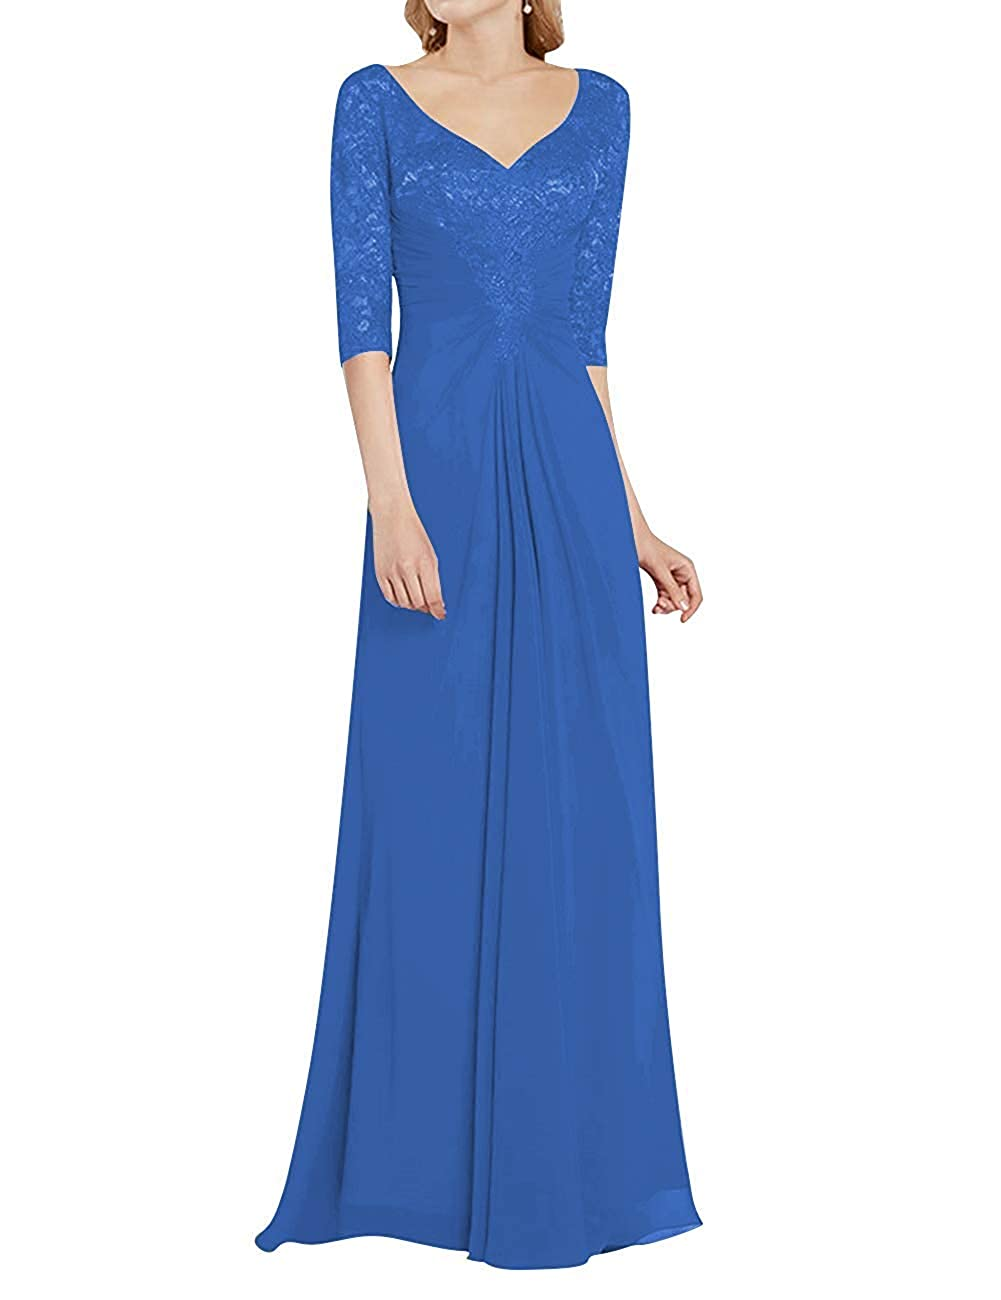 bluee Mother of The Bride Dress with Half Long Sleeves Formal Evening Gownes Mother Dresses